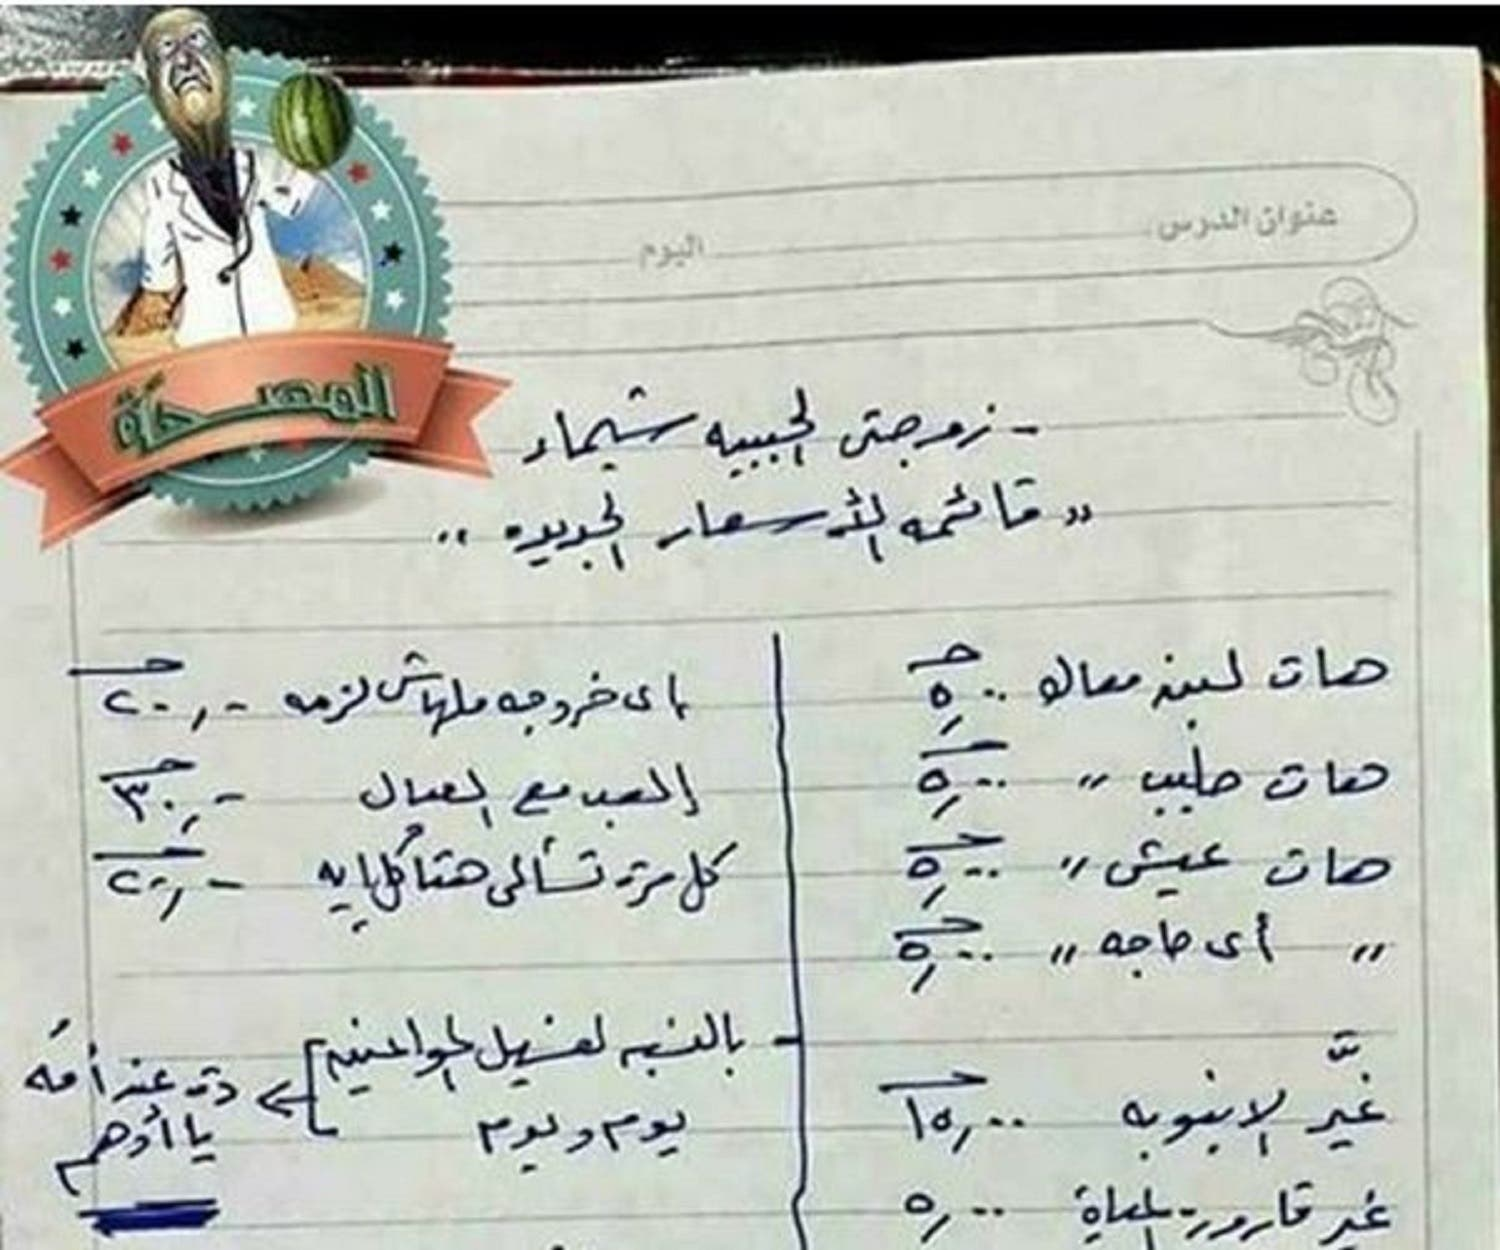 Egyptian husband's price list for household work (Supplied)